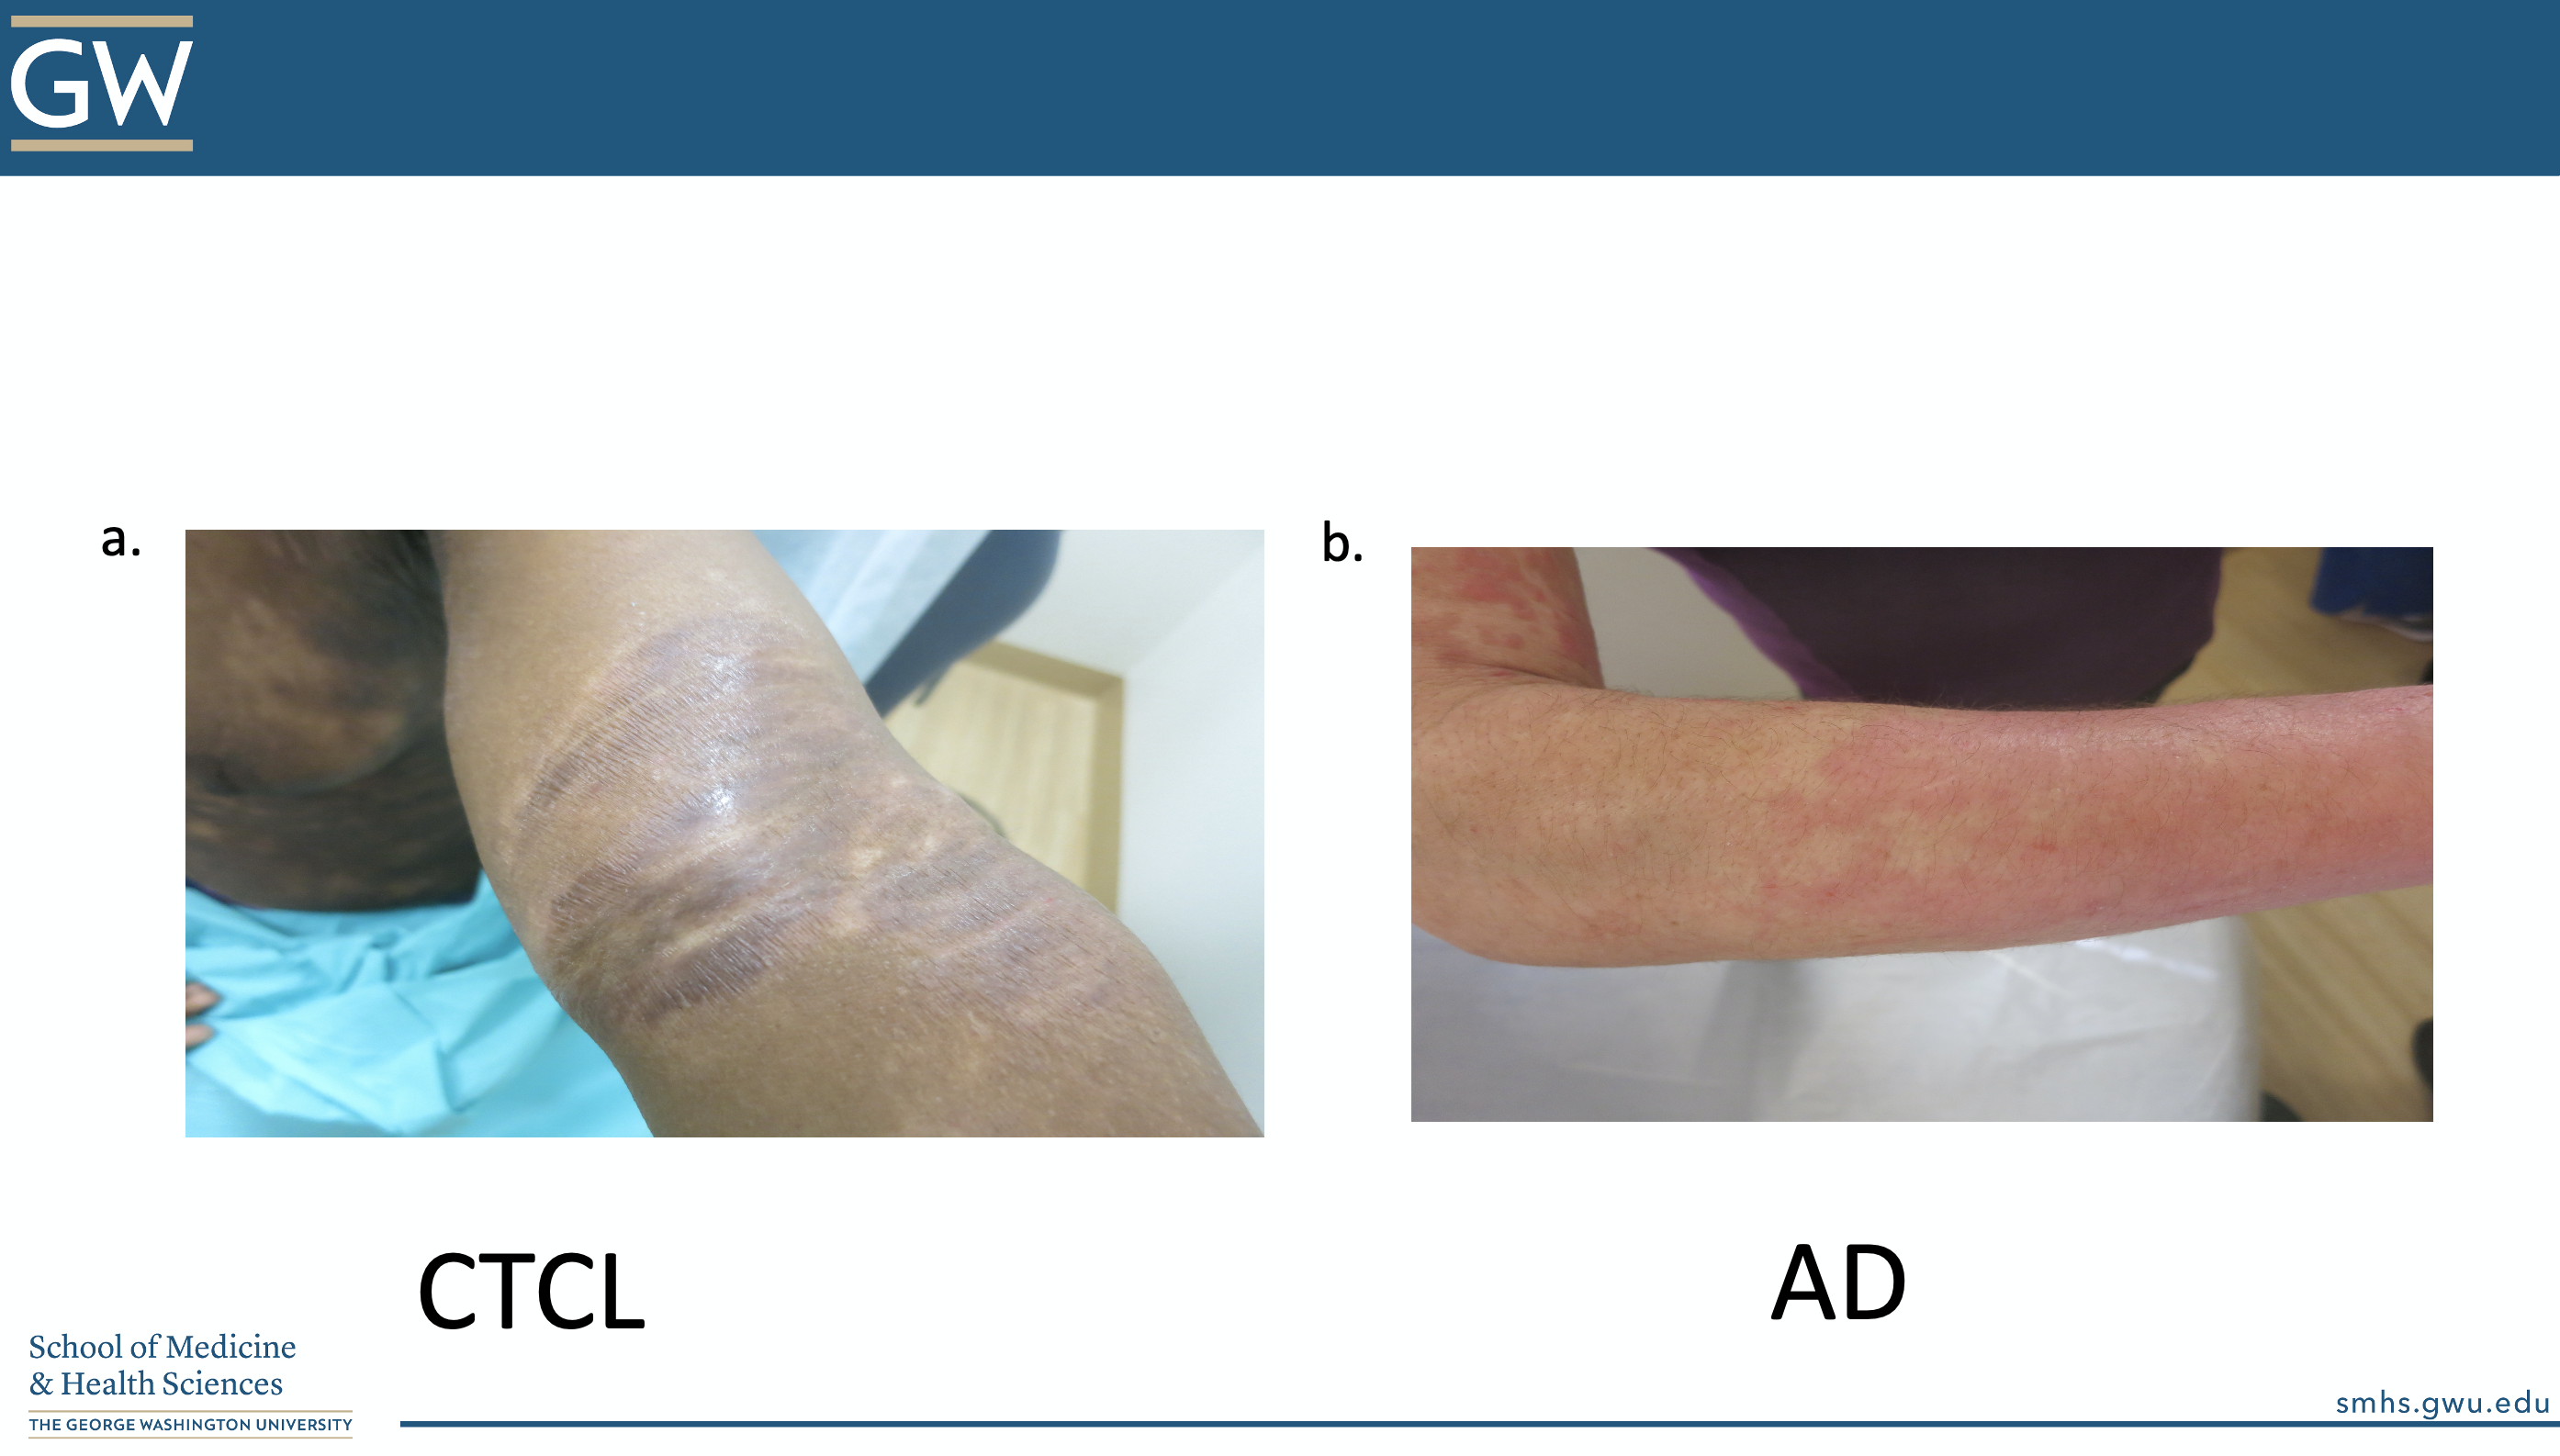 Atopic Dermatitis vs. CTCL